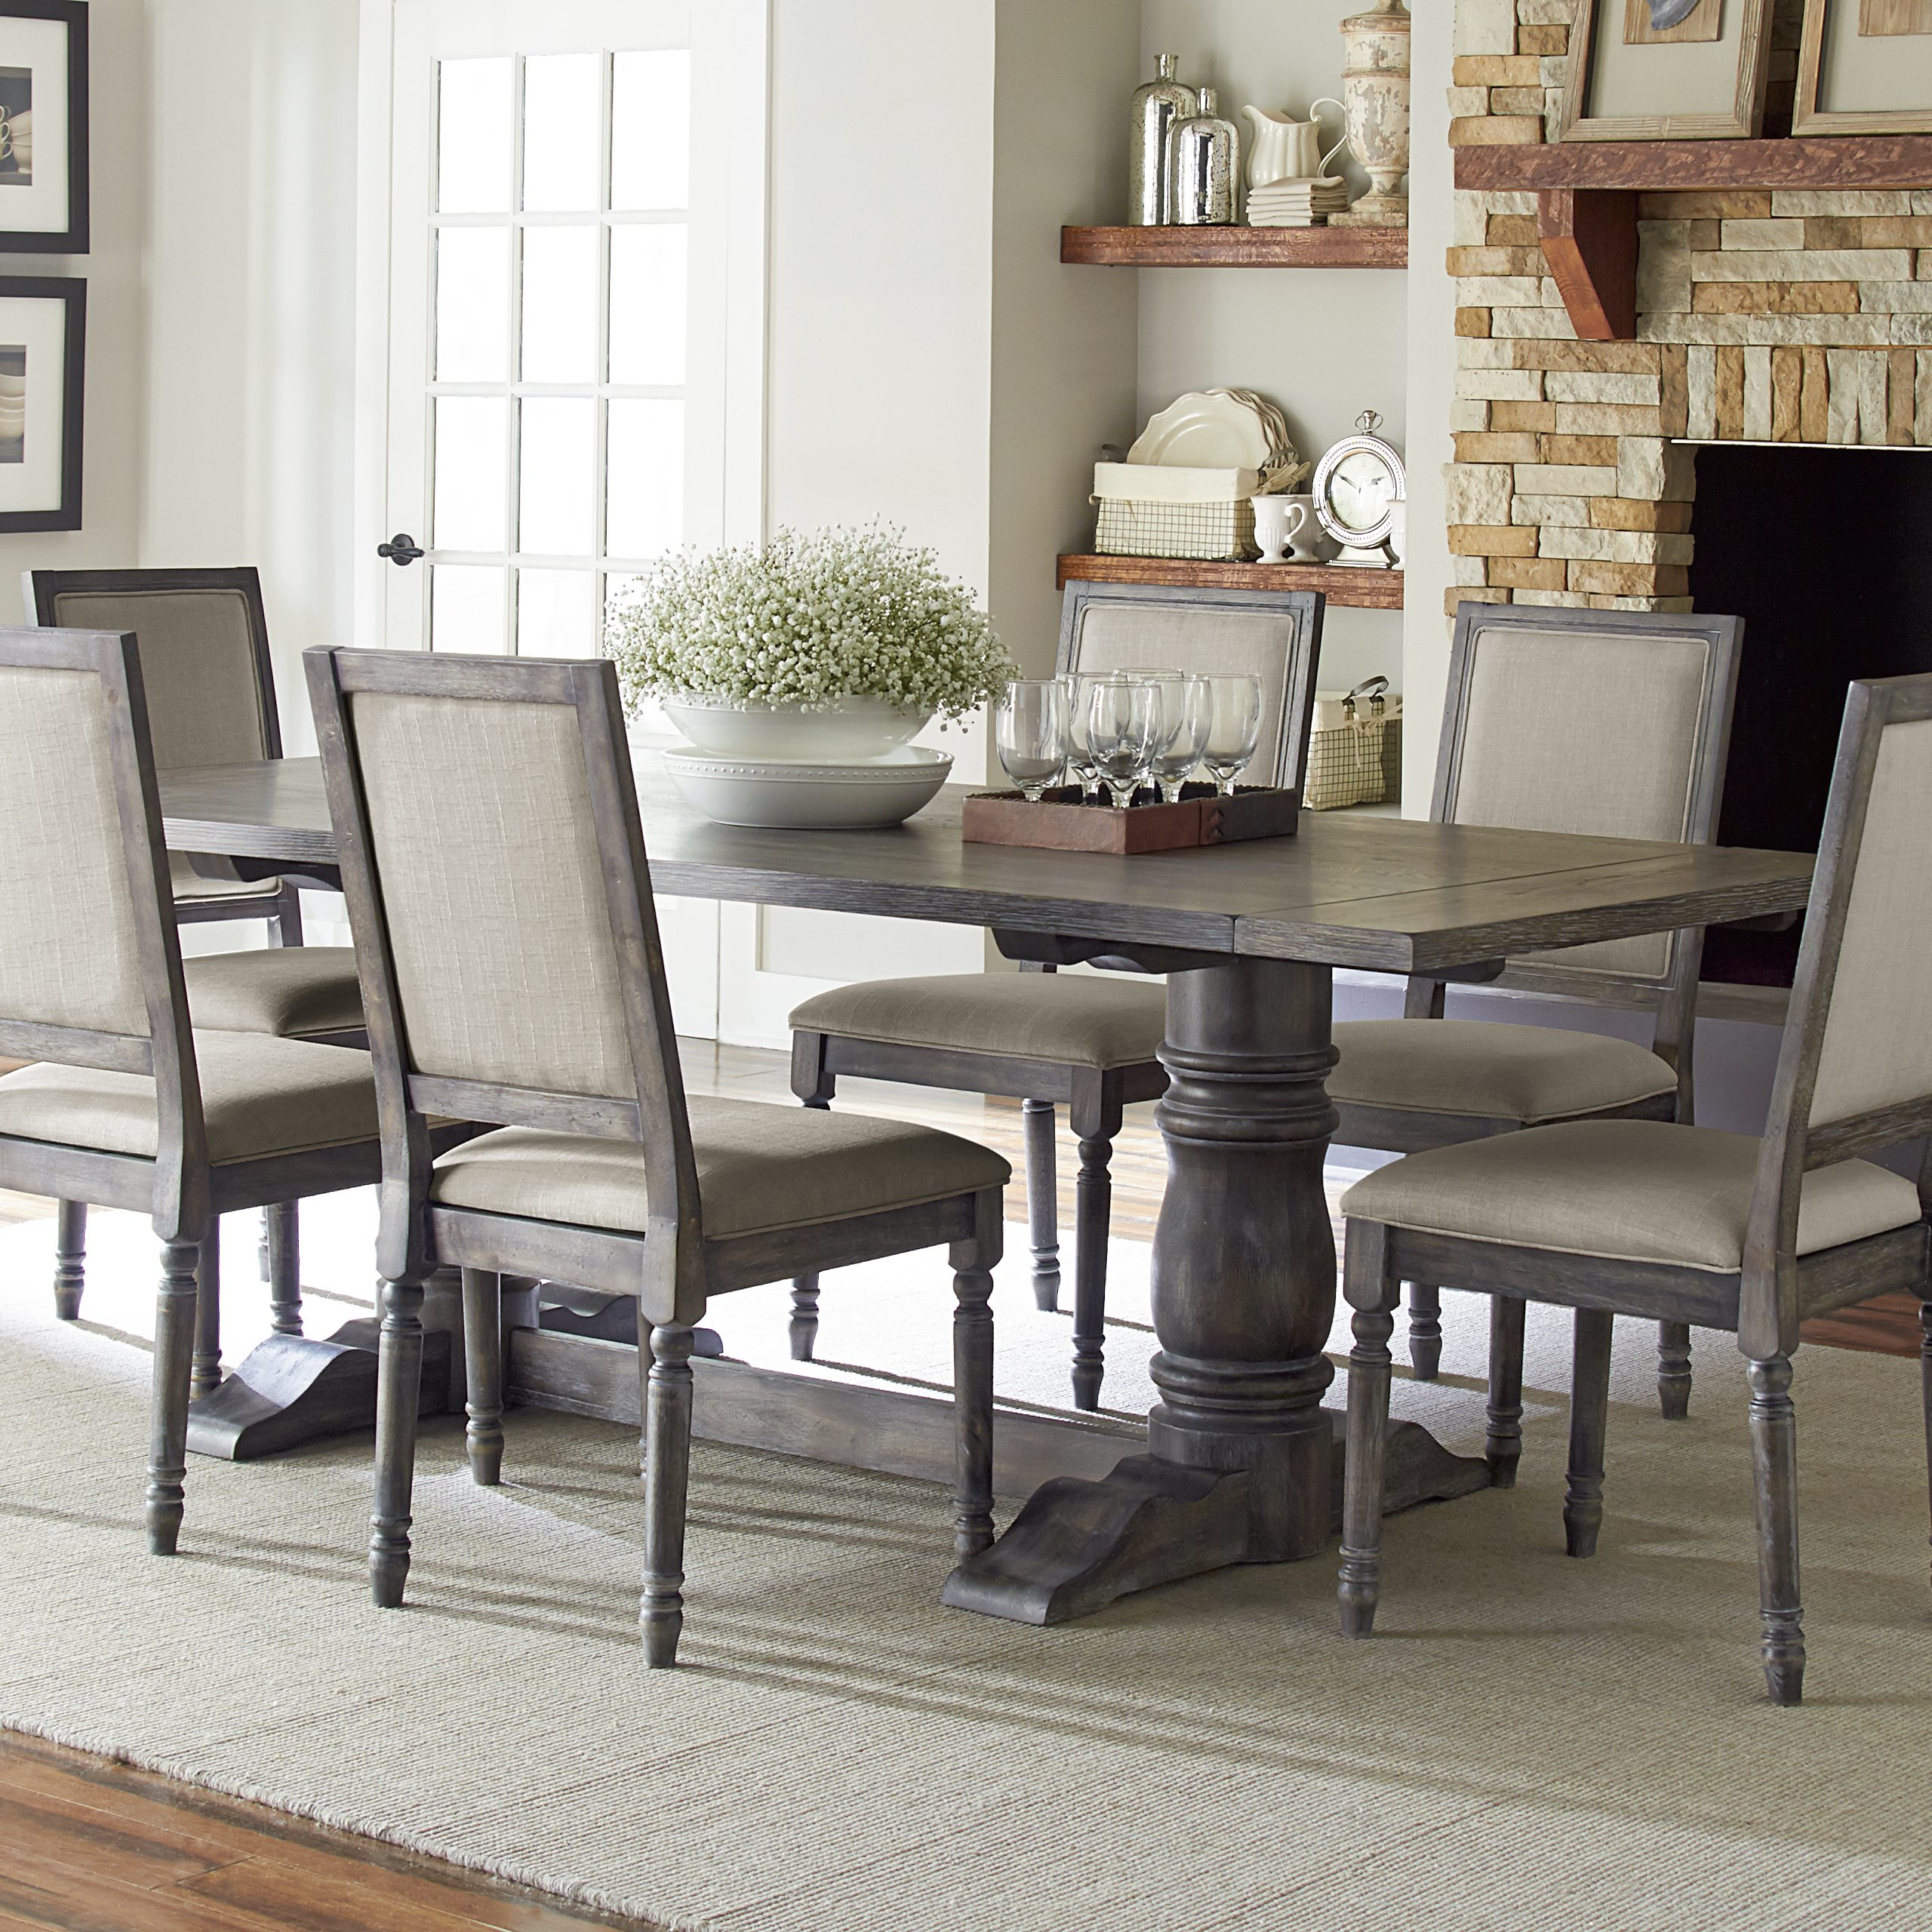 Trendy Modern Rustic Dining Table Set (View 19 of 21)